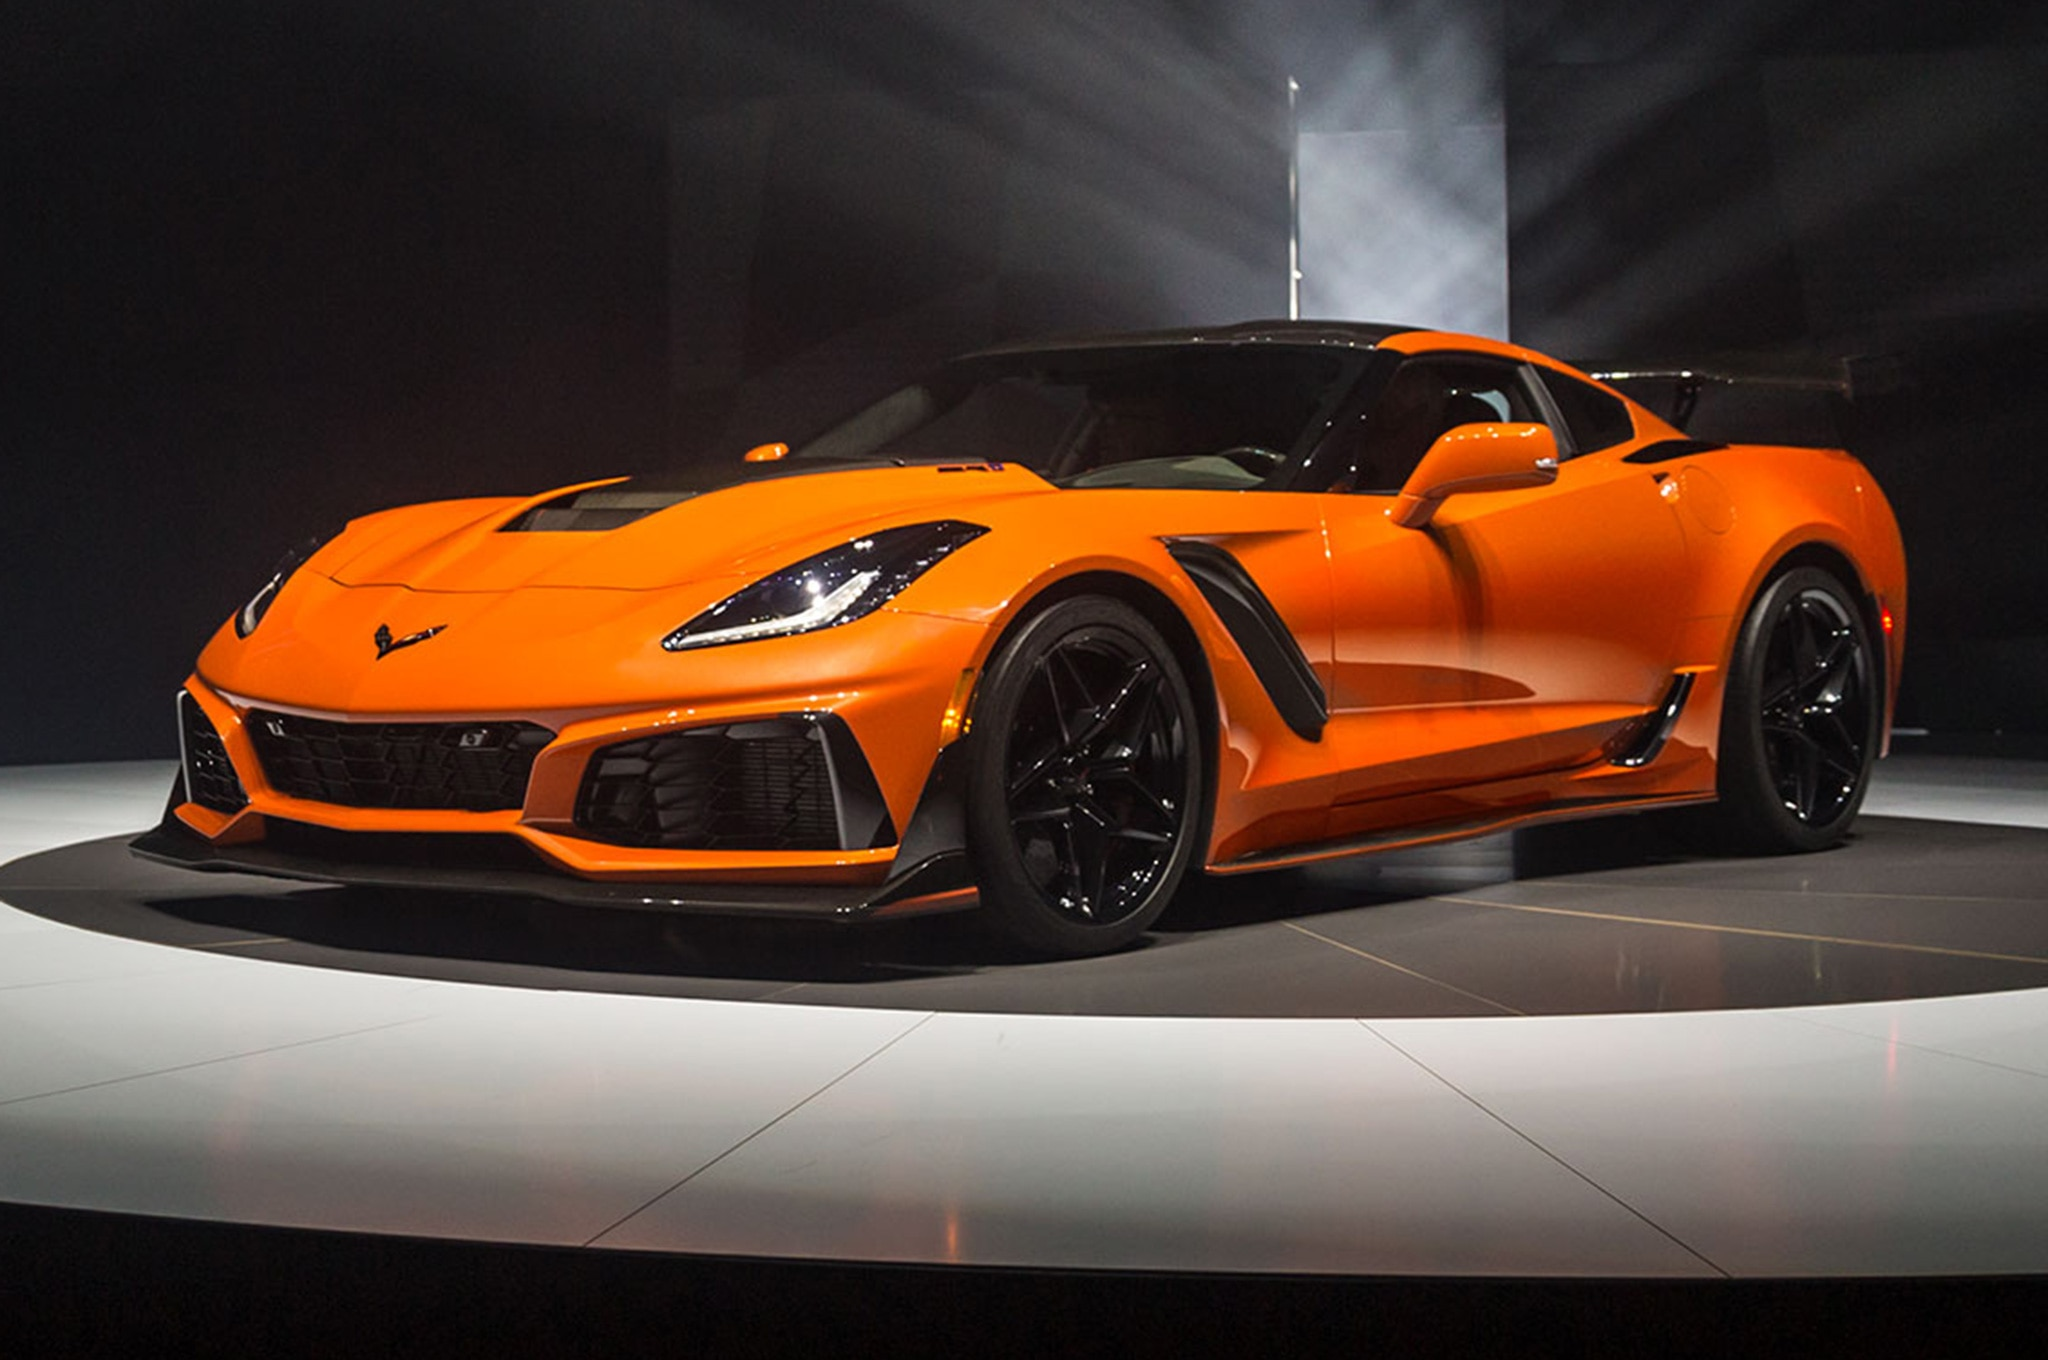 2019 Chevrolet Corvette ZR1 Front Side View On Stage